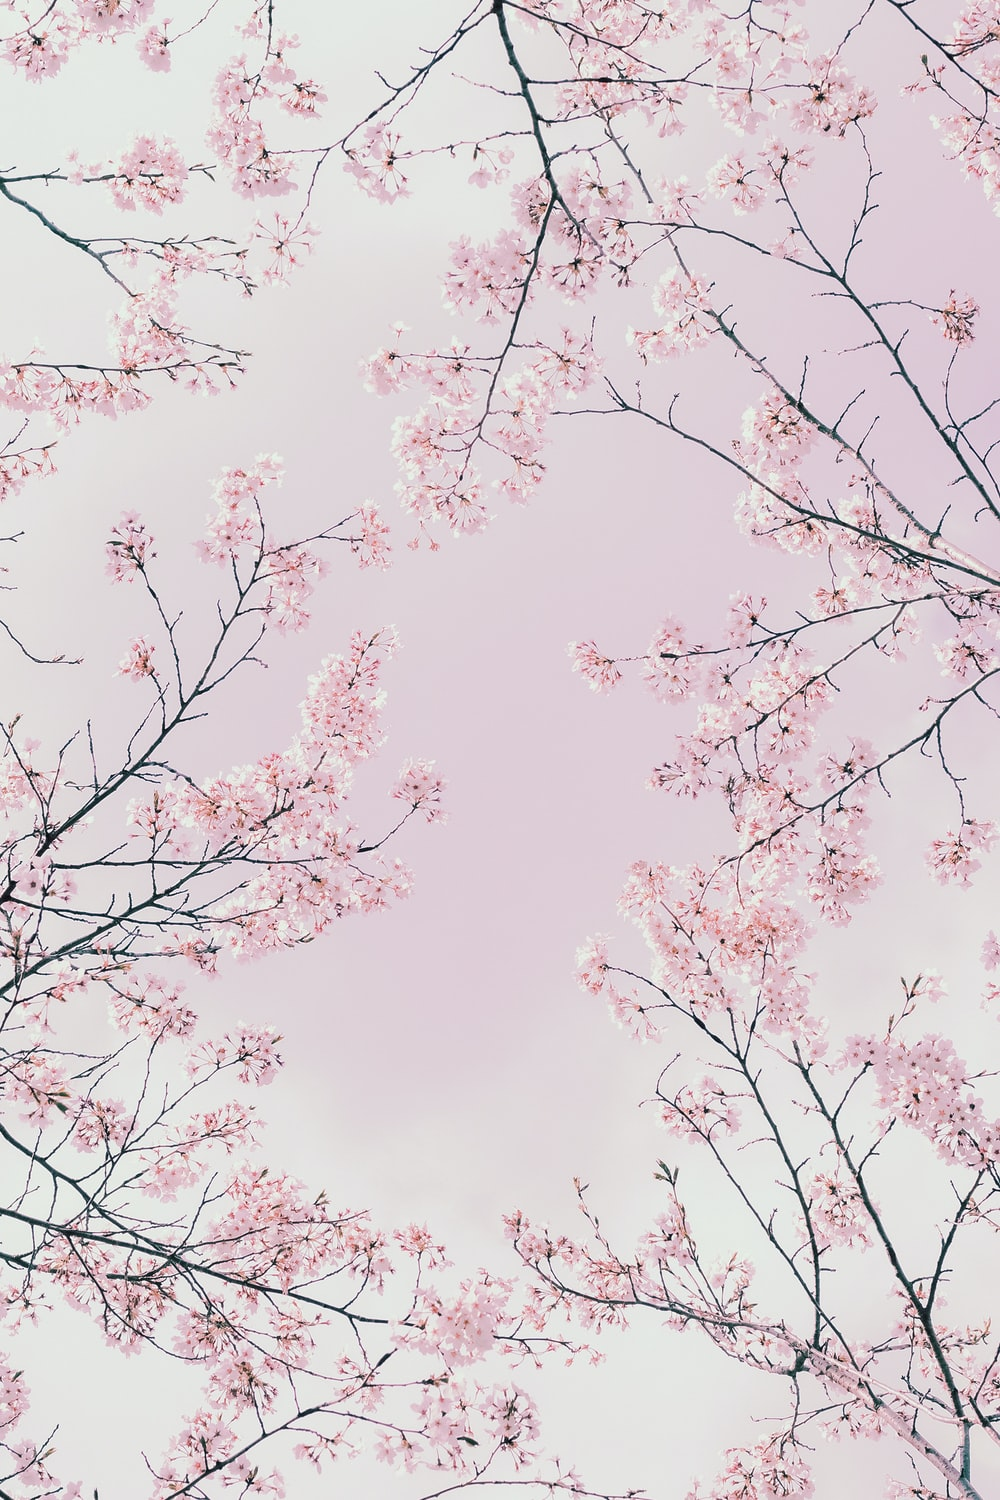 pink cherry blossom tree under white clouds